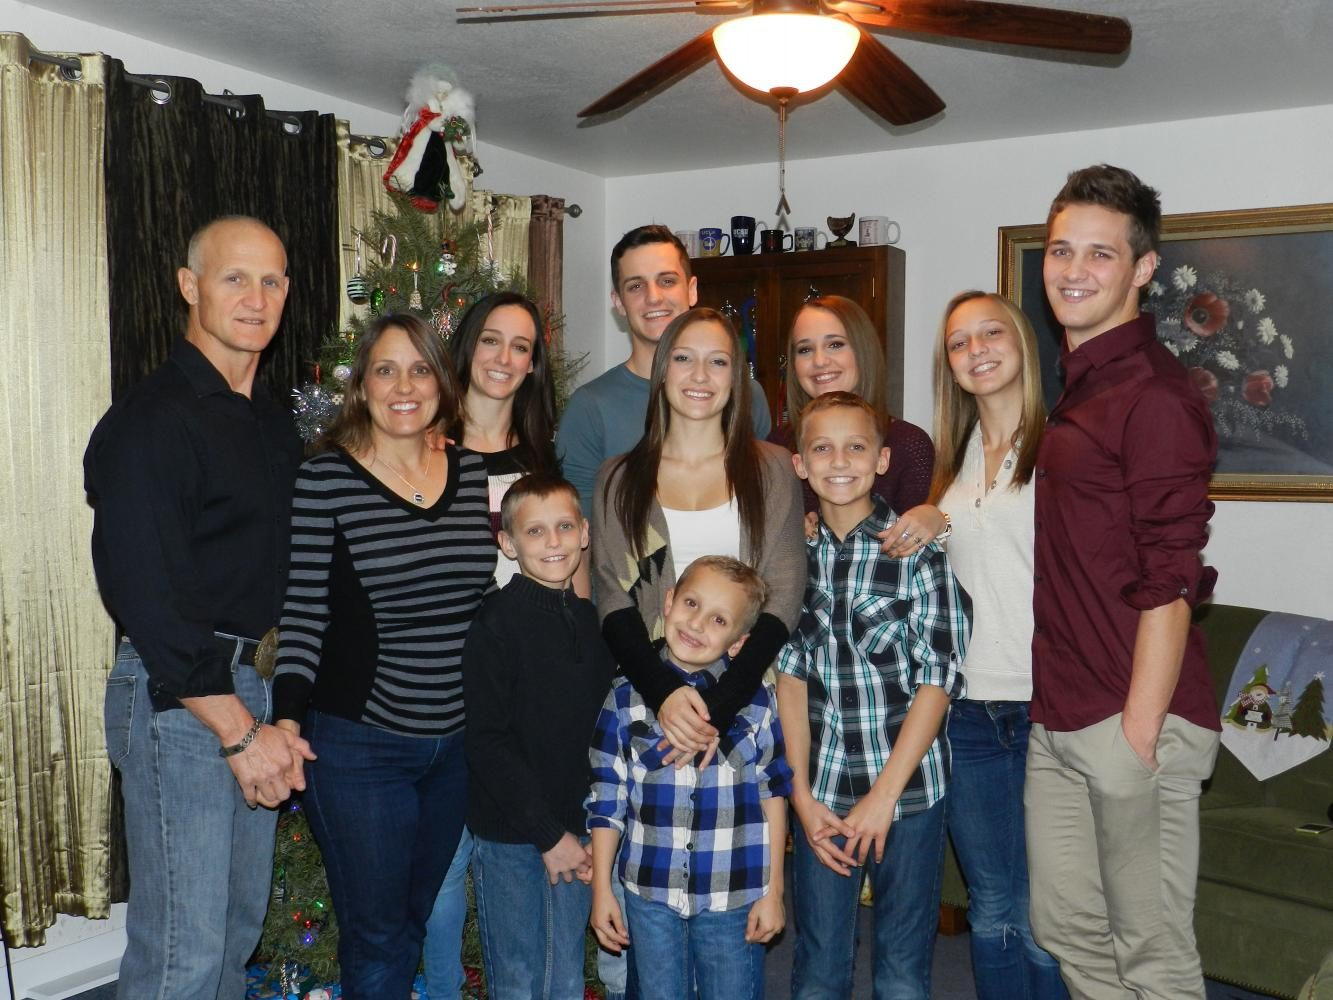 Calavitta family picture. Featured far left is Samuel Calavitta and Monica Calavitta, parents of  (from left to right) Back row: Ciena, 26, Gino, 23, Genoa, 21, Avi, 17, Antonio, 24.  Middle row: Catania, 19, Angelo, 14 Front row: Macario, 12, Marcello, 9 Courtesy of the Calavitta family.